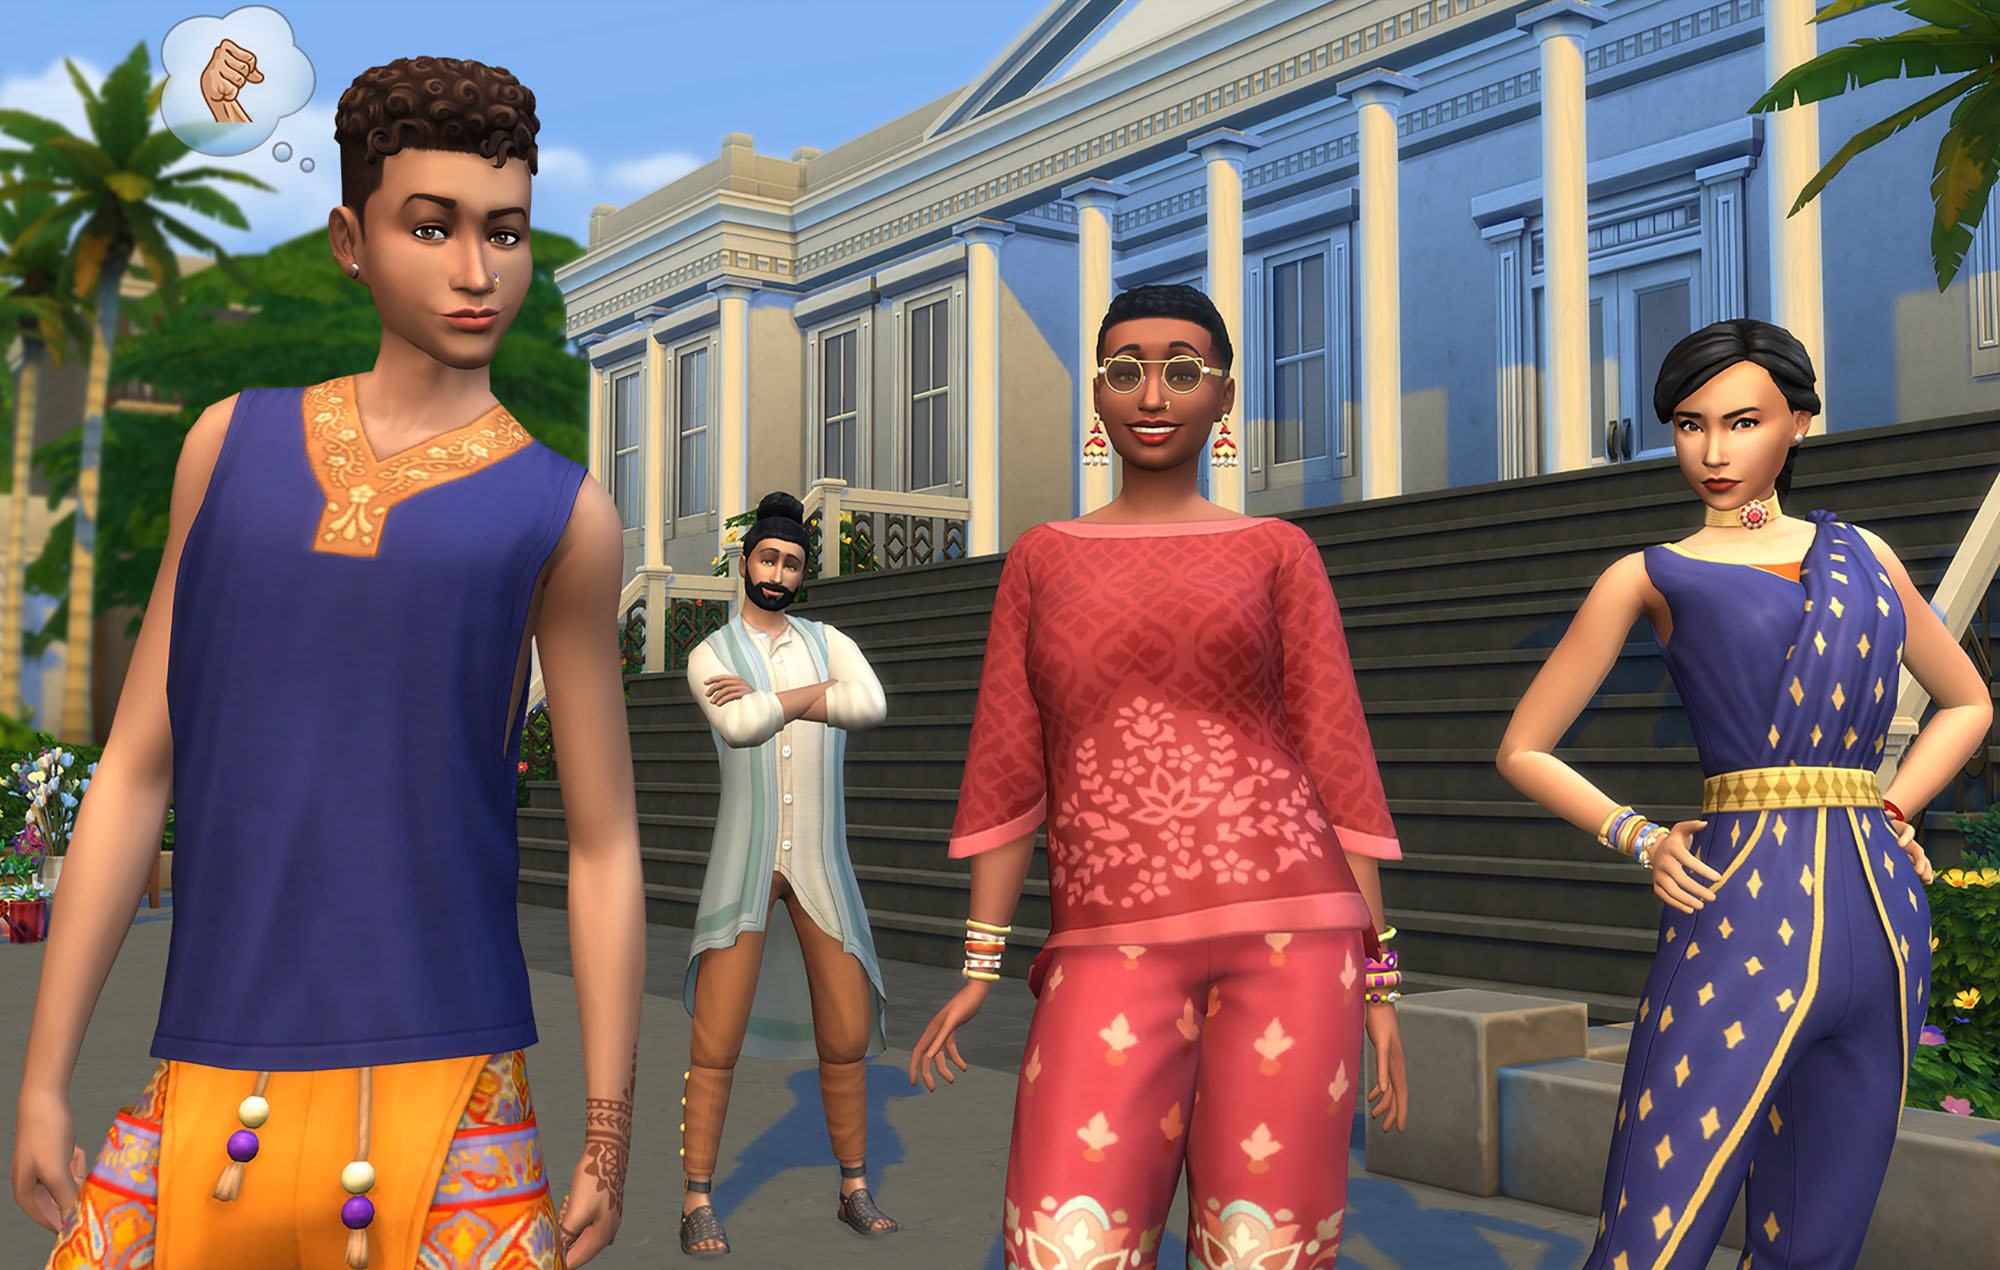 Fashion Street Kit in The Sims 4. Image credit: EA/Maxis